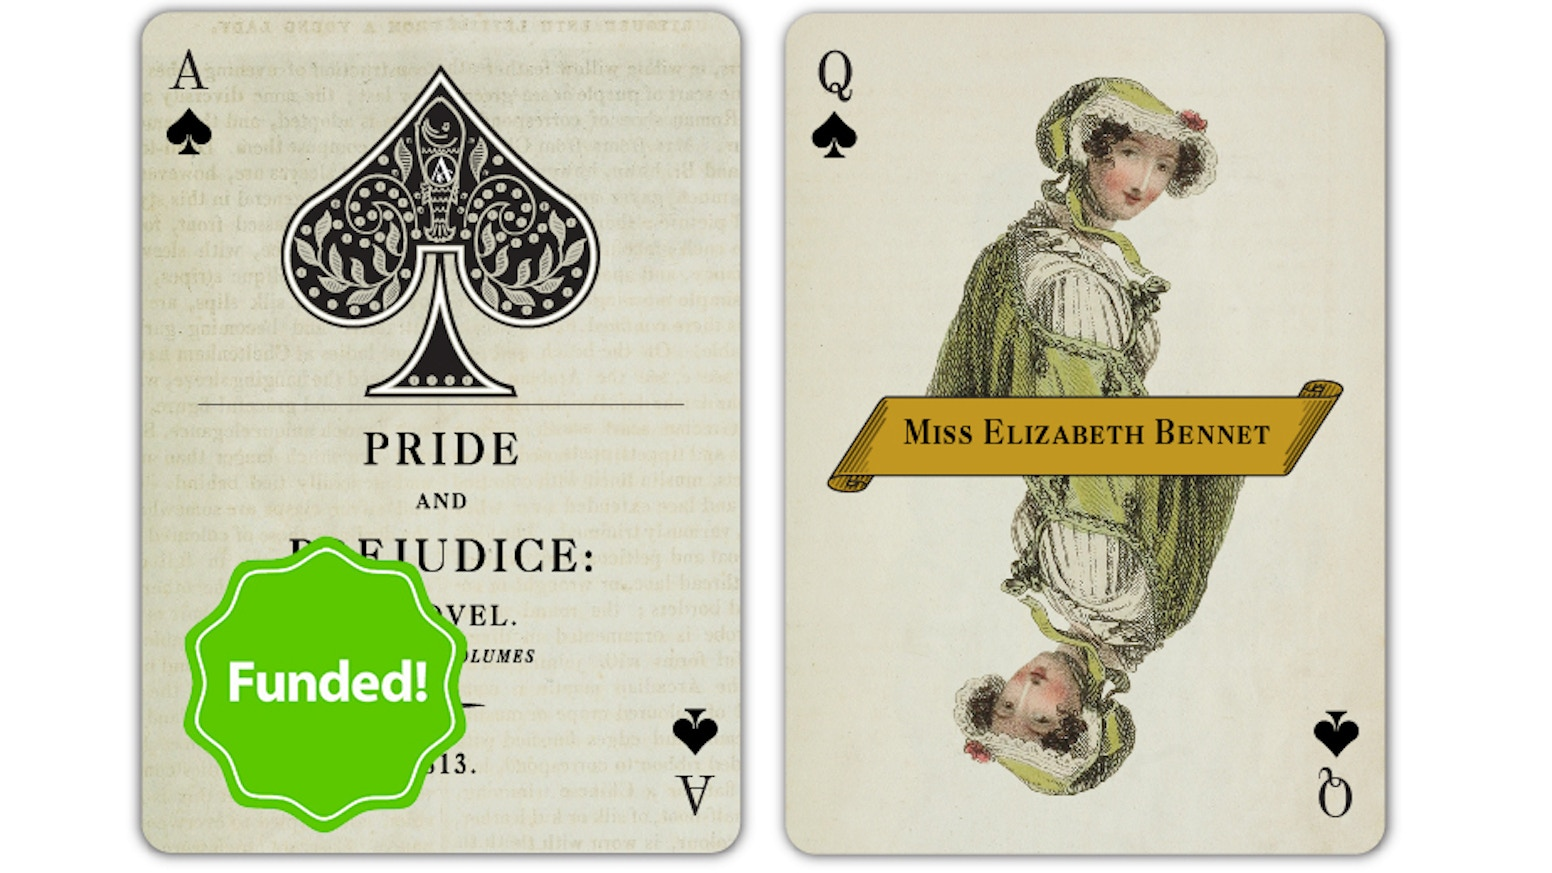 A fully custom deck of playing cards inspired by Jane Austen's well-loved novels and characters, and rich in authentic period detail. Missed the campaign?